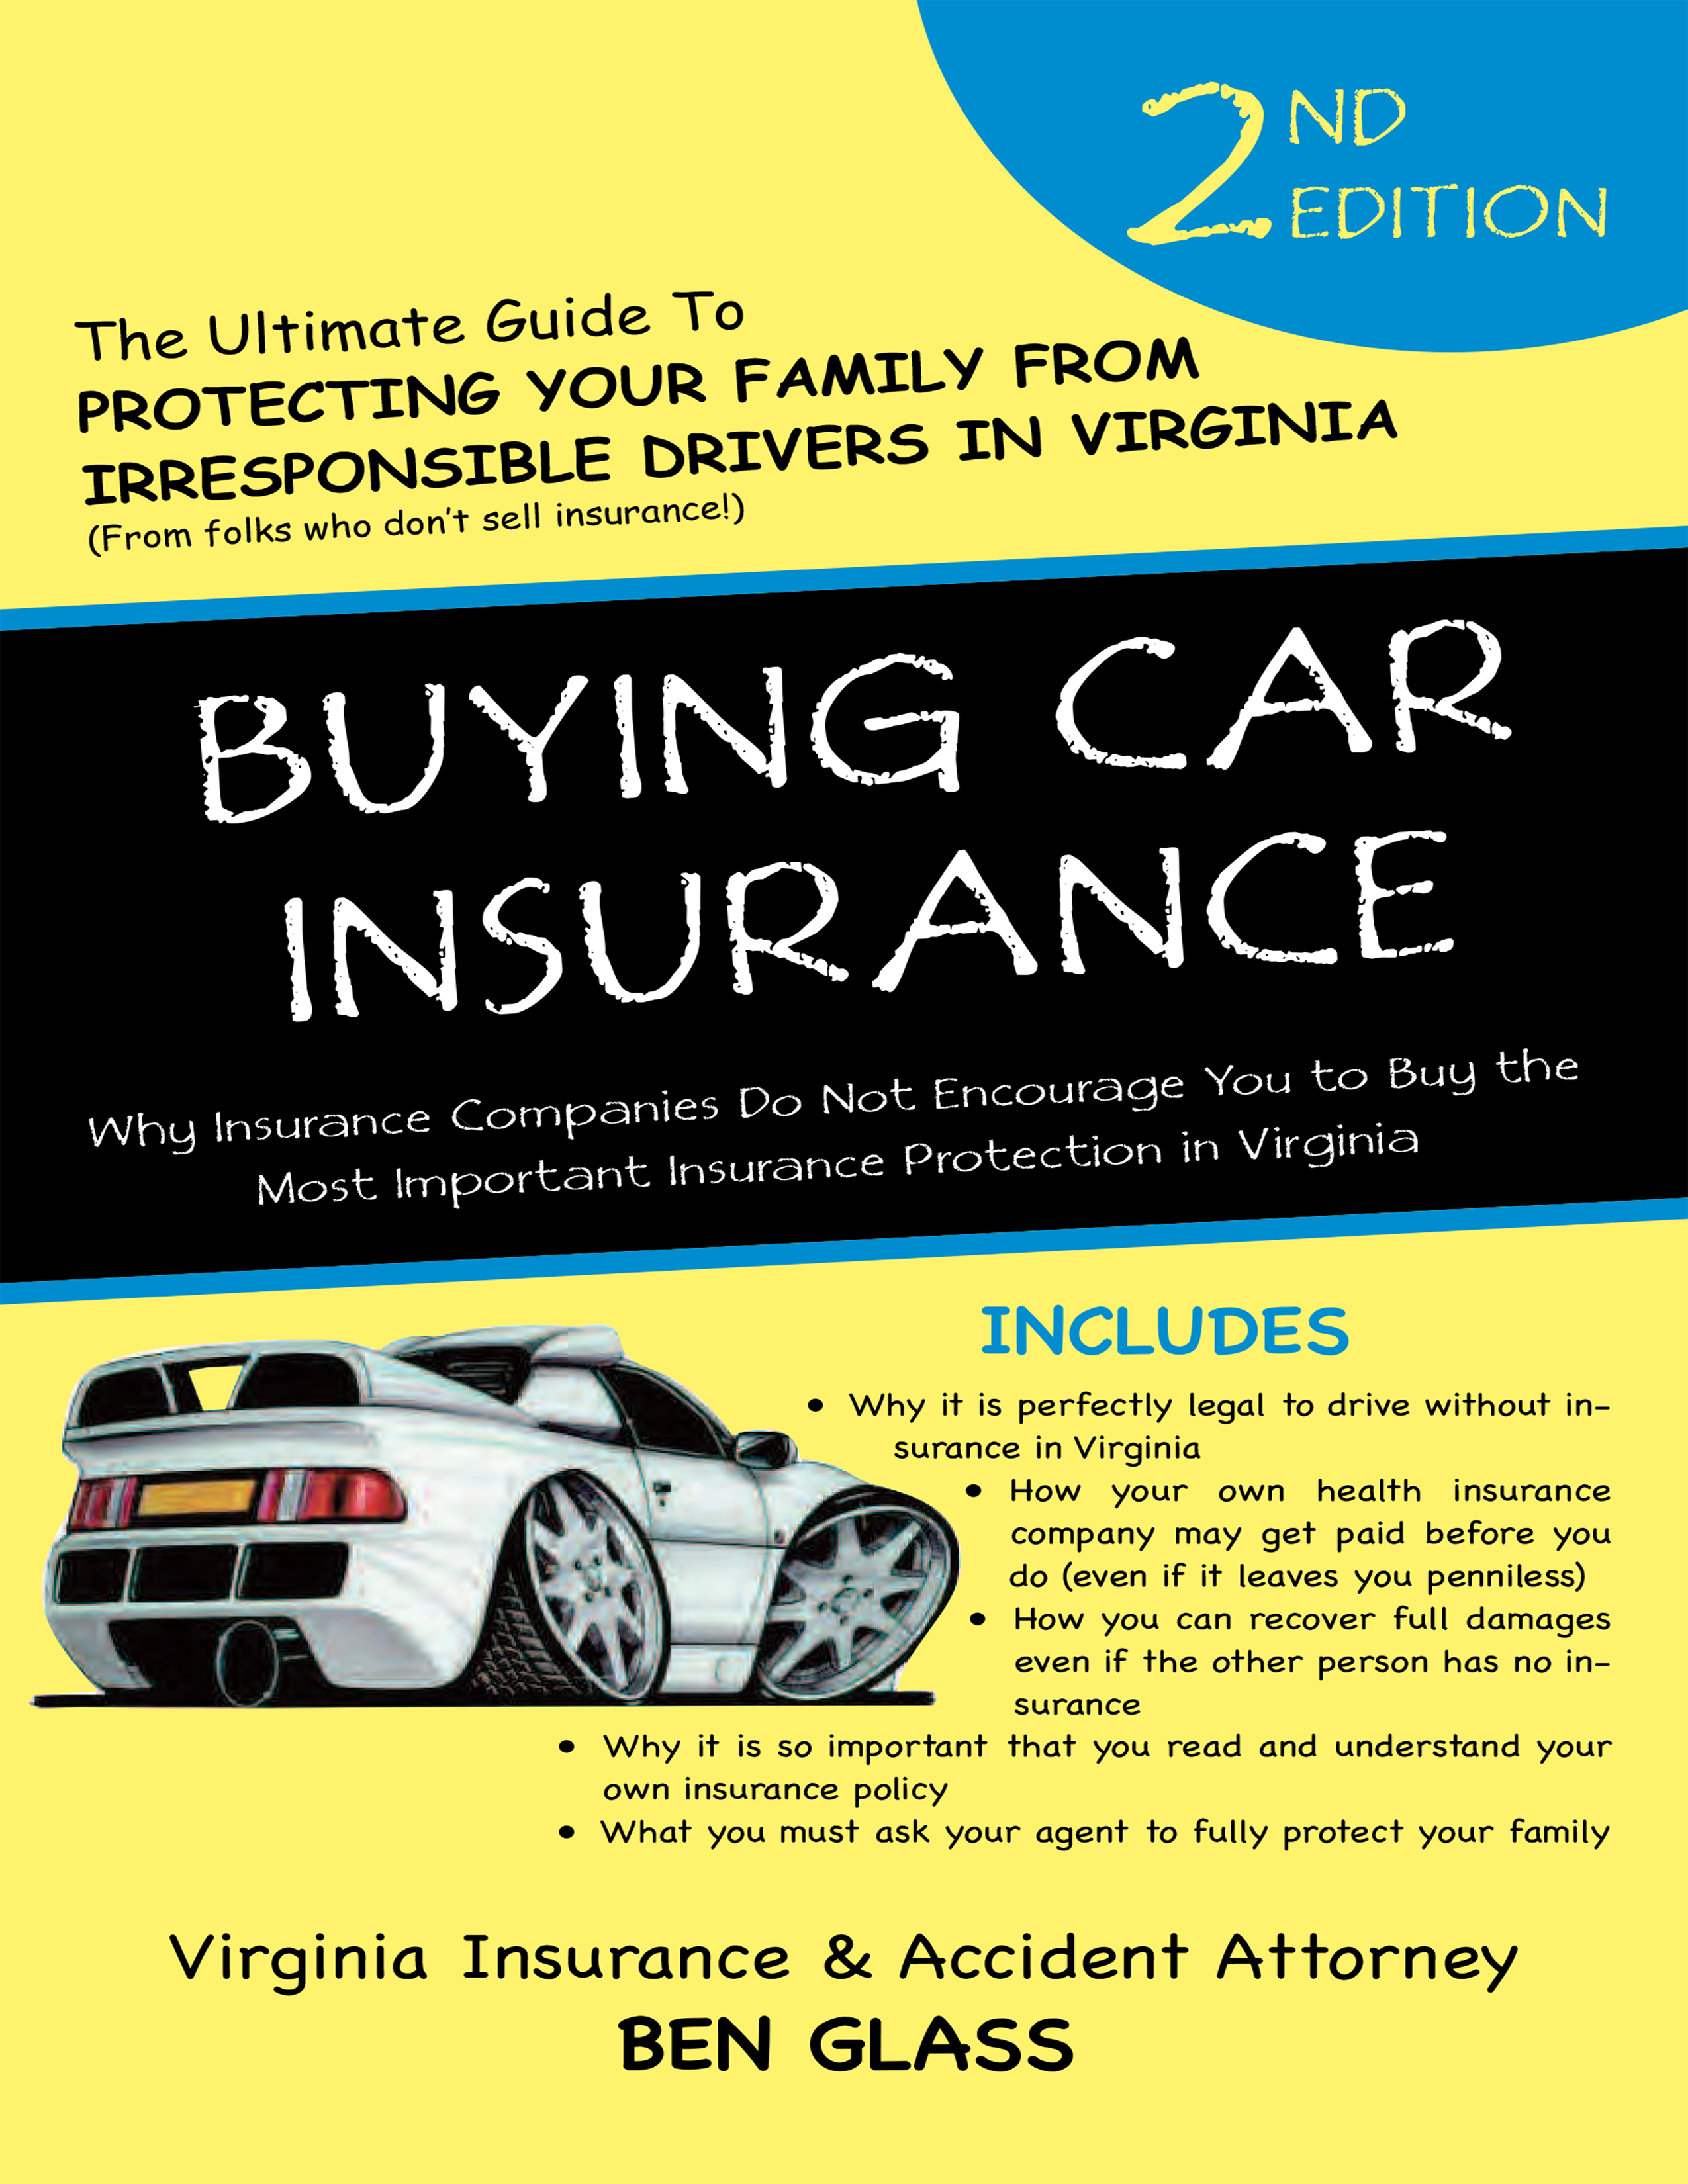 Free Book Gives You the Secrets to Buying Car Insurance that You Won't Hear From Any Car Insurance Agent.